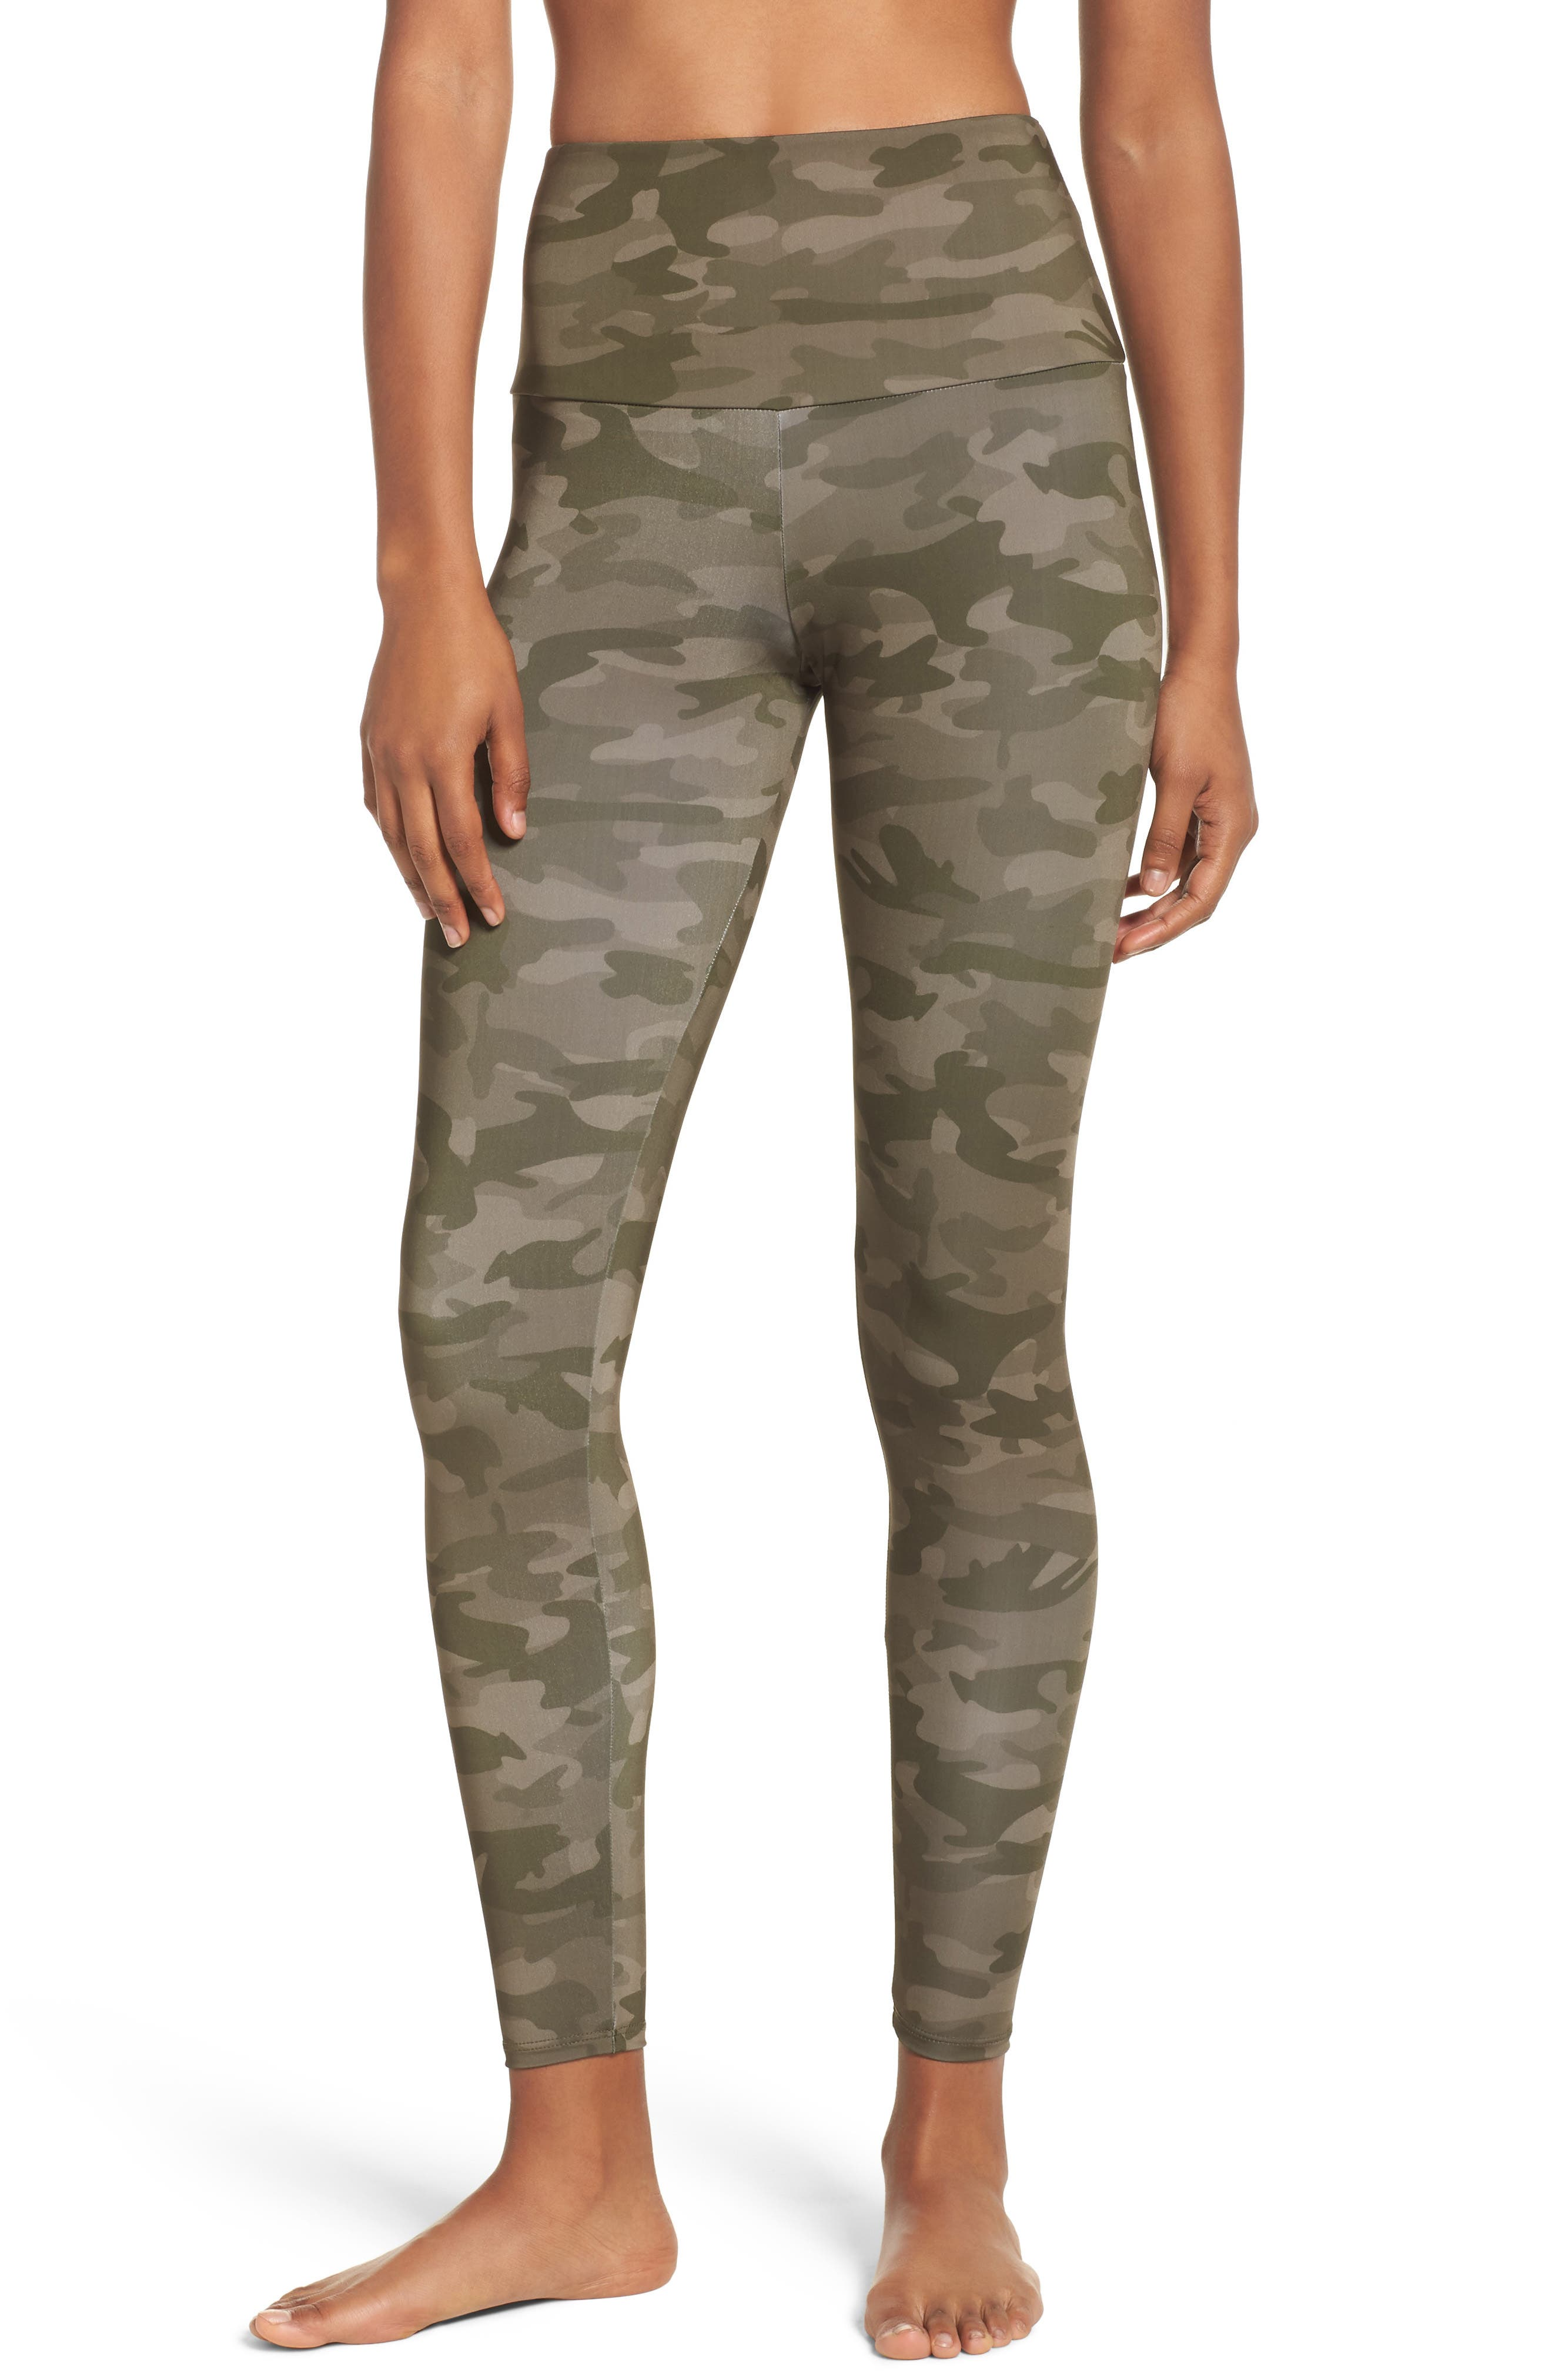 High Waist Print Leggings,                             Main thumbnail 1, color,                             MOSS CAMO